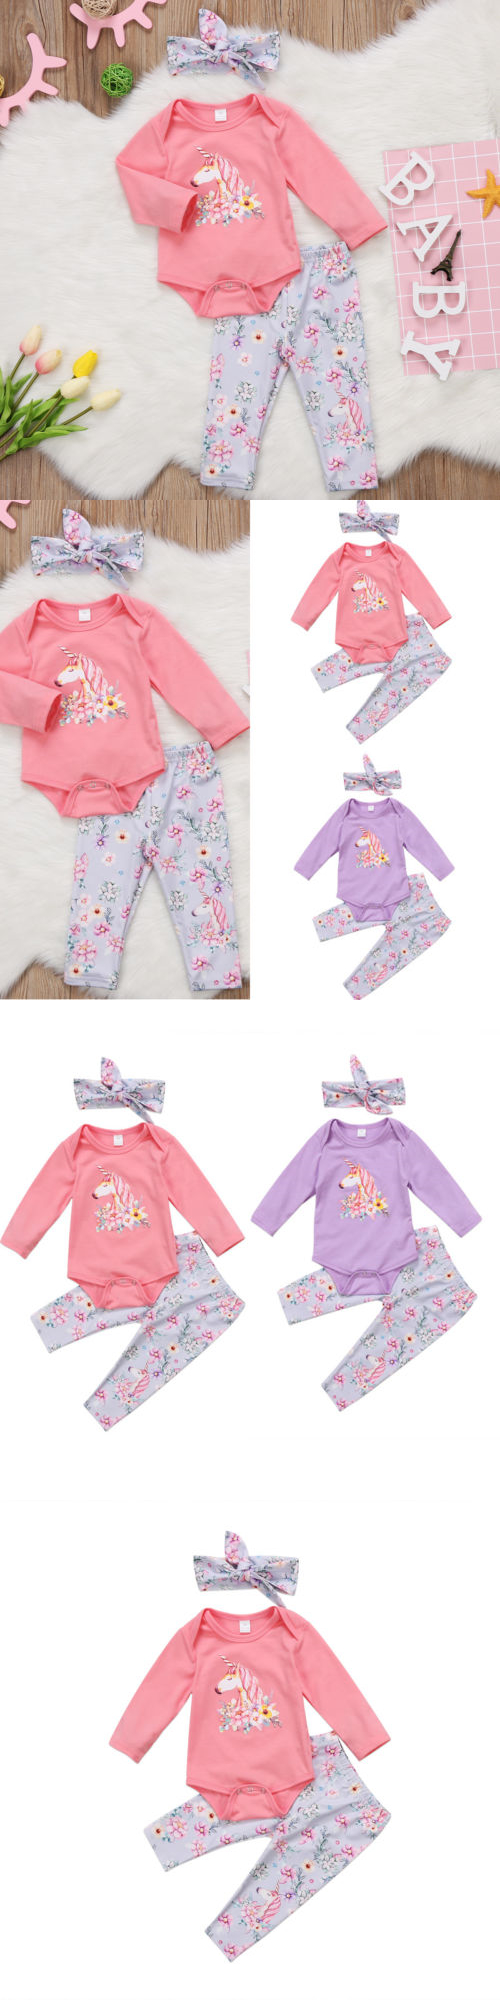 Baby Girls Clothing: Us Stock Unicorn Newborn Baby Girls Top Romper Long Pants Outfits Clothes 0-24M -> BUY IT NOW ONLY: $8.54 on eBay!